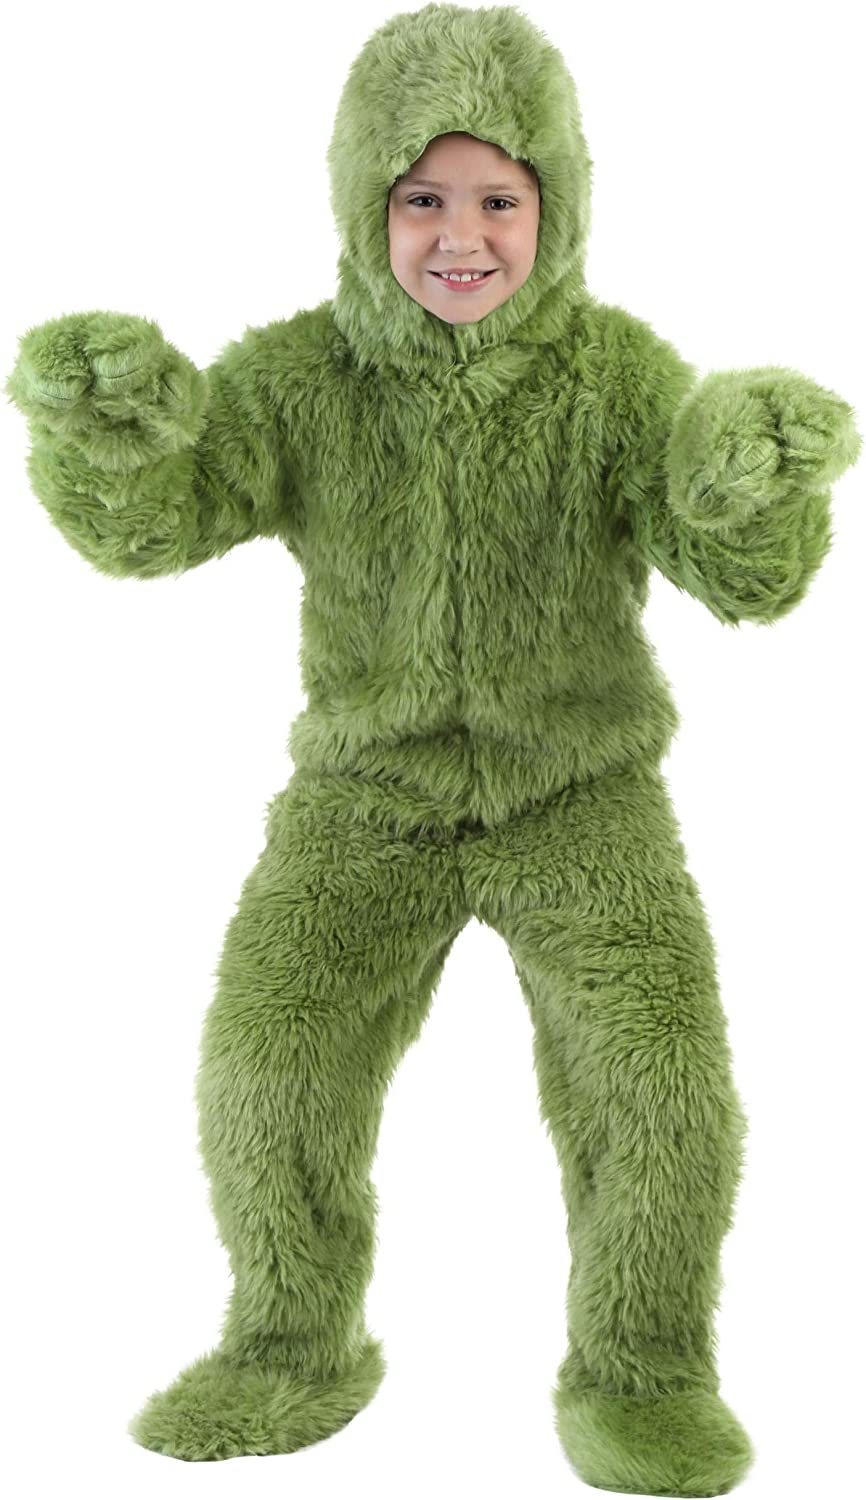 Child Furry Green Monster Christmas Costume Onesie Rapid Max 73% OFF rise